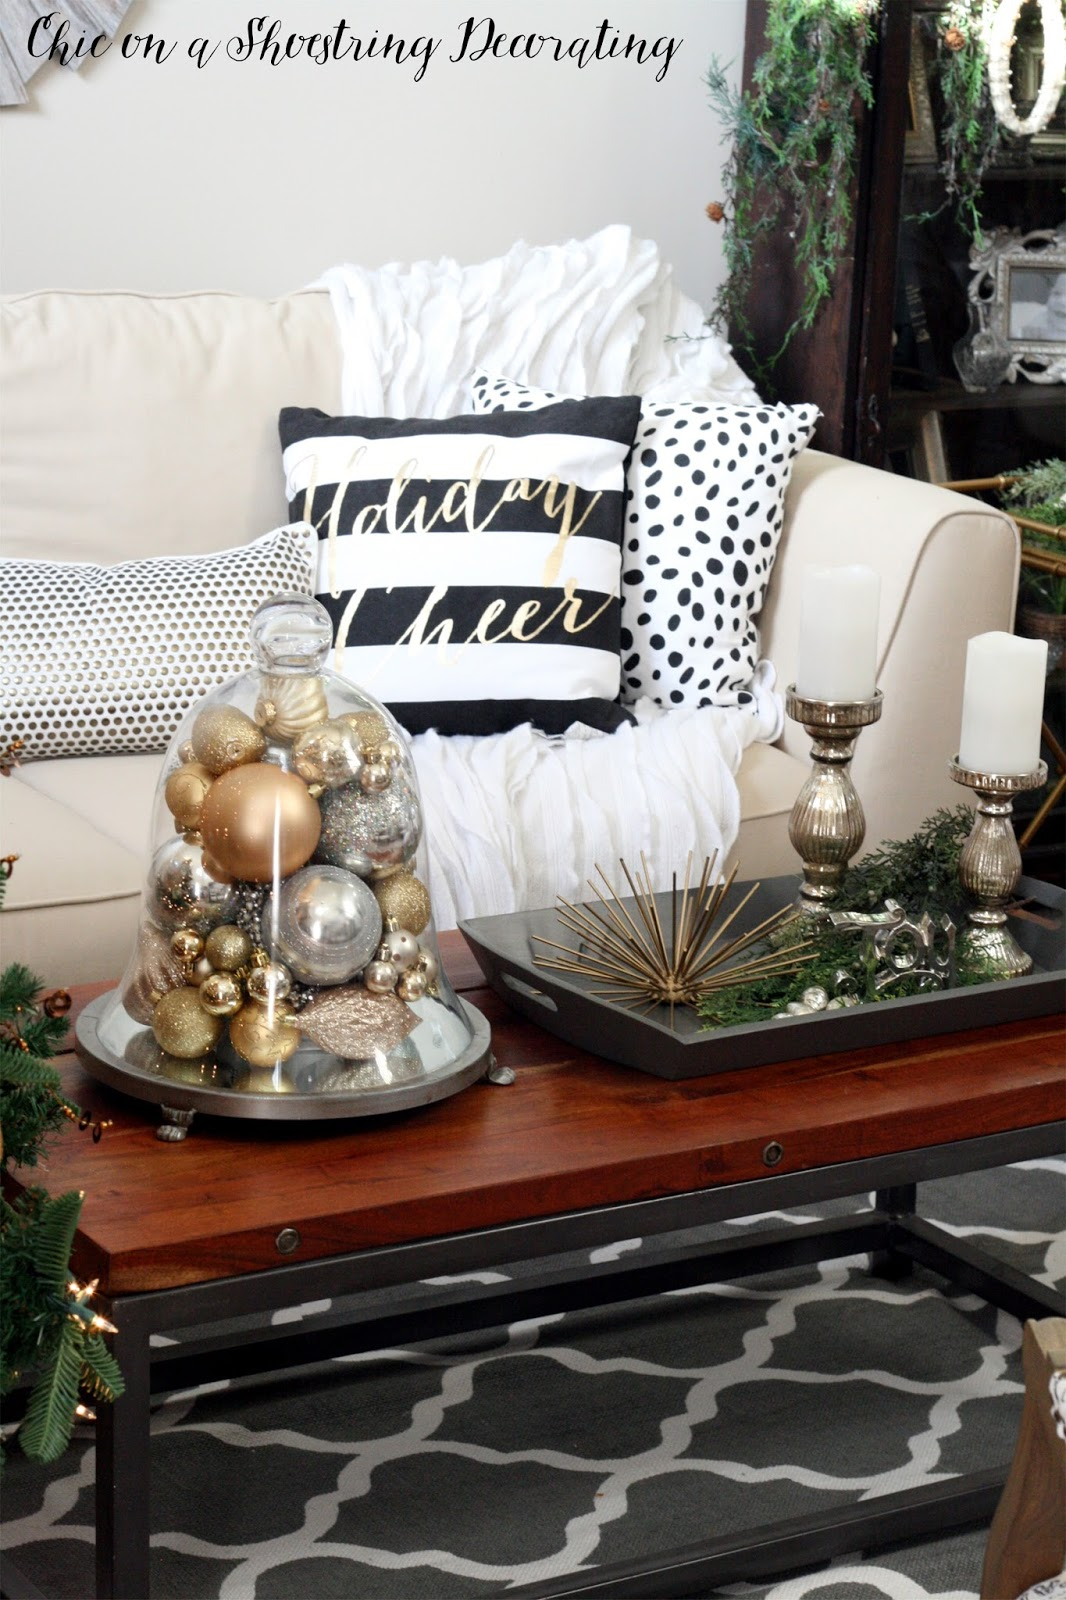 Chic on a Shoestring Decorating  Chic Christmas Decor  Merry     Chic Christmas Decor  Chic on a Shoestring Decorating Blog